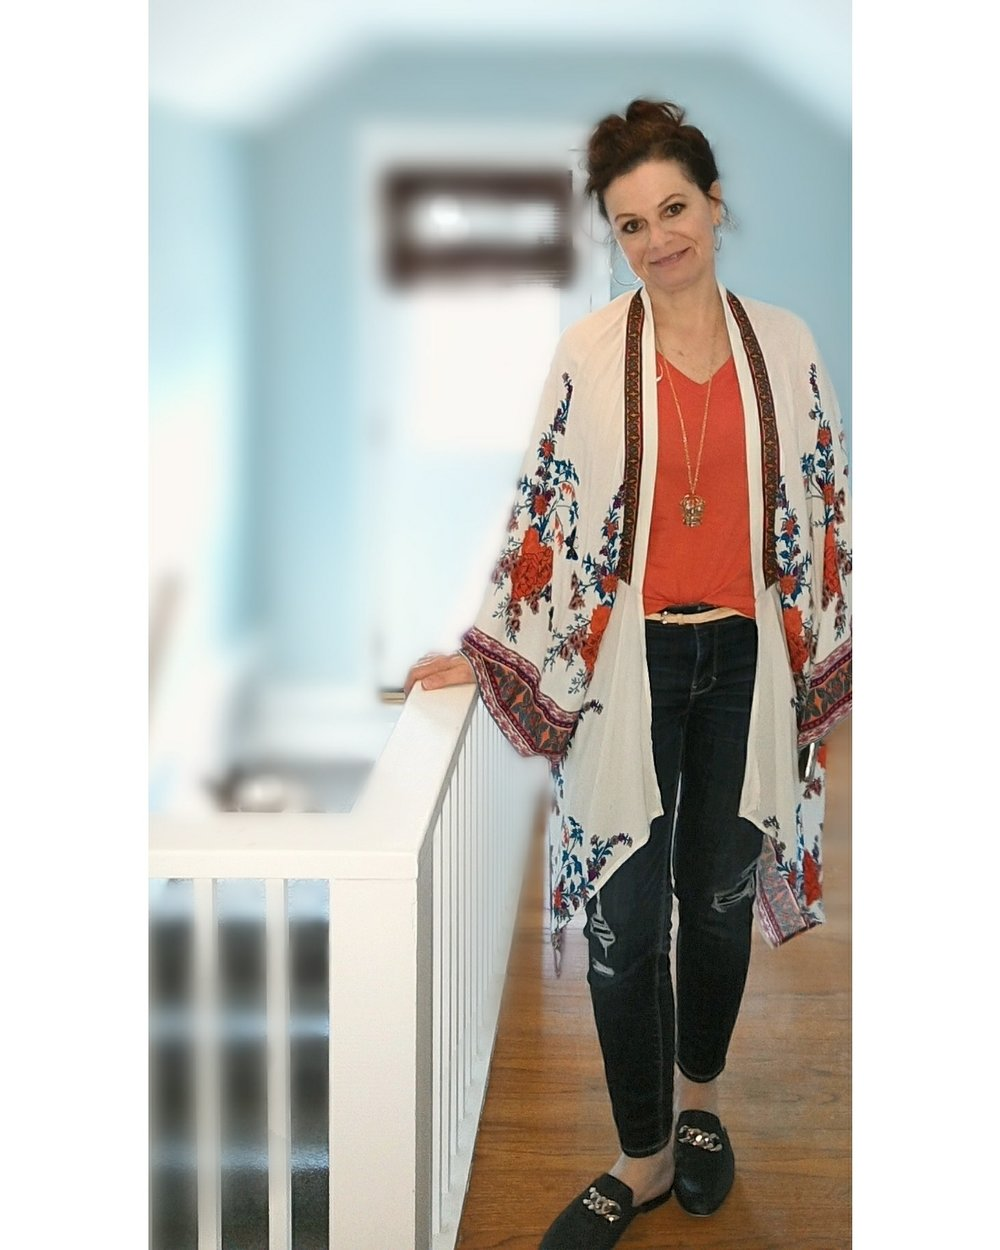 Colorful !   - Try pairing a bright top with jeans, add another colorful layer to the top to pull the look together.